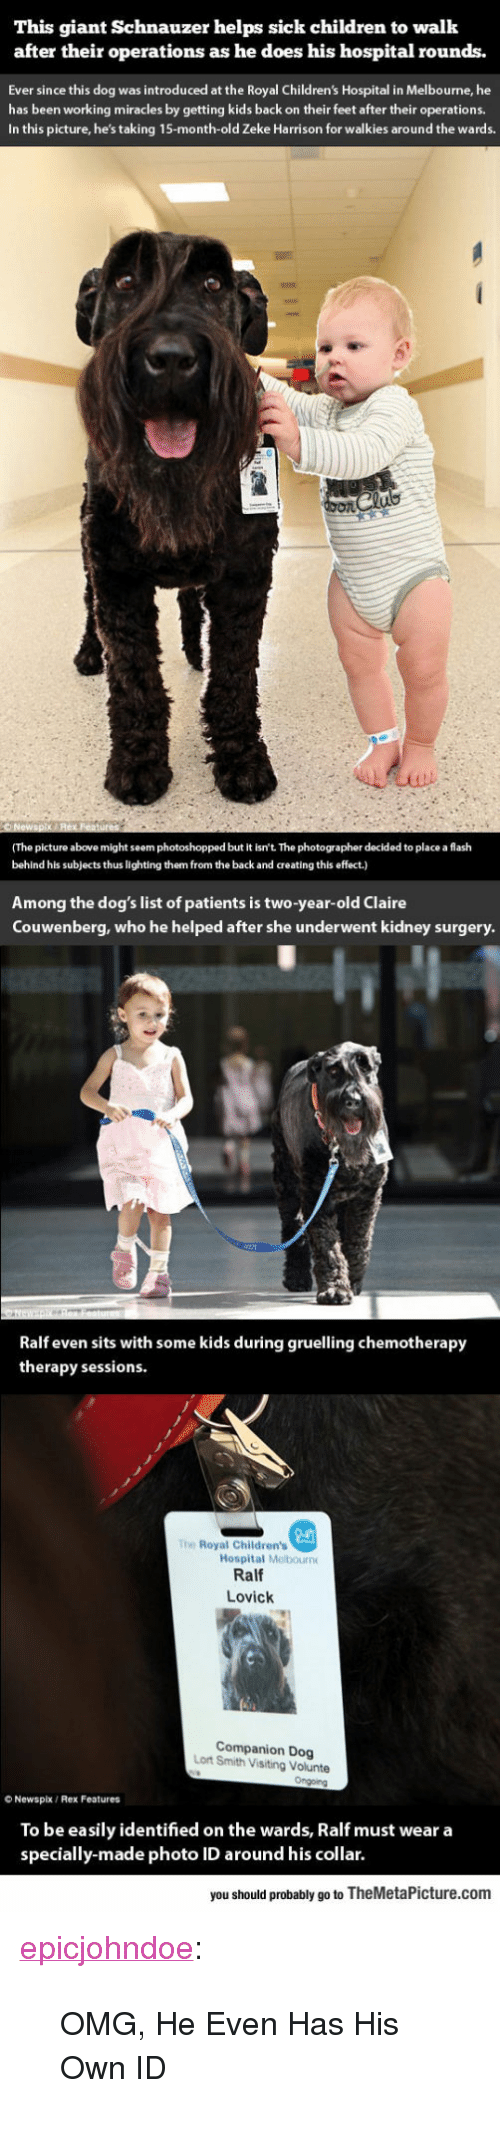 "Children's Hospital: This giant Schnauzer helps sick children to walk  after their operations as he does his hospital rounds.  Ever since this dog was introduced at the Royal Children's Hospital in Melbourne, he  has been working miracles by getting kids back on their feet after their operations.  In this picture, he's taking 15-month-old Zeke Harrison for walkies around the wards.  (The picture above might seem photoshopped but it isn't. The photographer decided to place a flash  behind his subjects thus lighting them from the back and creating this effect.)  Among the dog's list of patients is two-year-old Claire  Couwenberg, who he helped after she underwent kidney surgery  Ralf even sits with some kids during gruelling chemotherapy  therapy sessions  The Royal Children's  Hospital Melbourn  Ralf  Lovick  Companion Dog  Lort Smith Visiting Volunte  O Newspix/ Rex Features  To be easily identified on the wards, Ralf must wear a  specially-made photo ID around his collar.  you should probably go to TheMetaPicture.com <p><a href=""https://epicjohndoe.tumblr.com/post/170360145056/omg-he-even-has-his-own-id"" class=""tumblr_blog"">epicjohndoe</a>:</p>  <blockquote><p>OMG, He Even Has His Own ID</p></blockquote>"